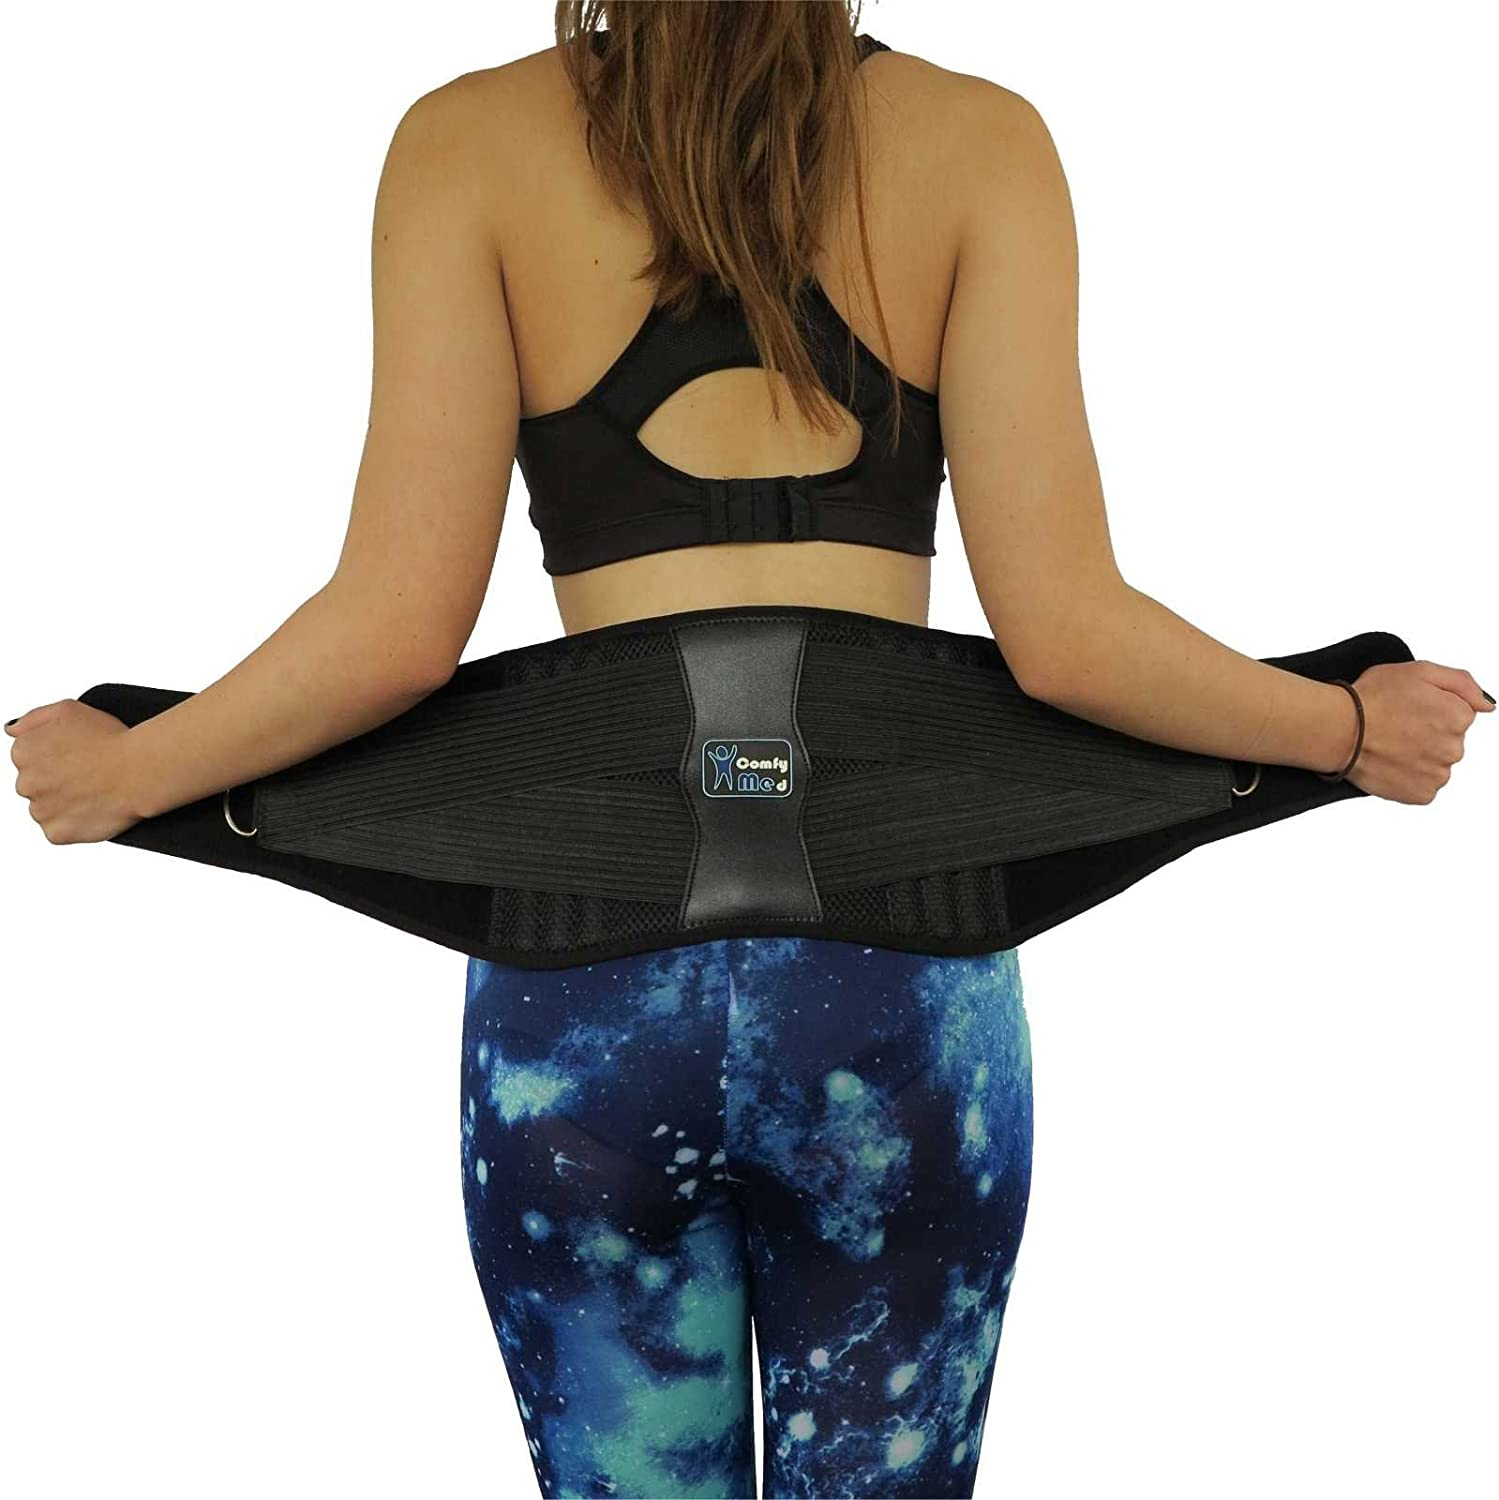 Popular shop is the lowest price challenge ComfyMed Premium Quality Back Brace CM-102M Lumba with Removable Sales of SALE items from new works